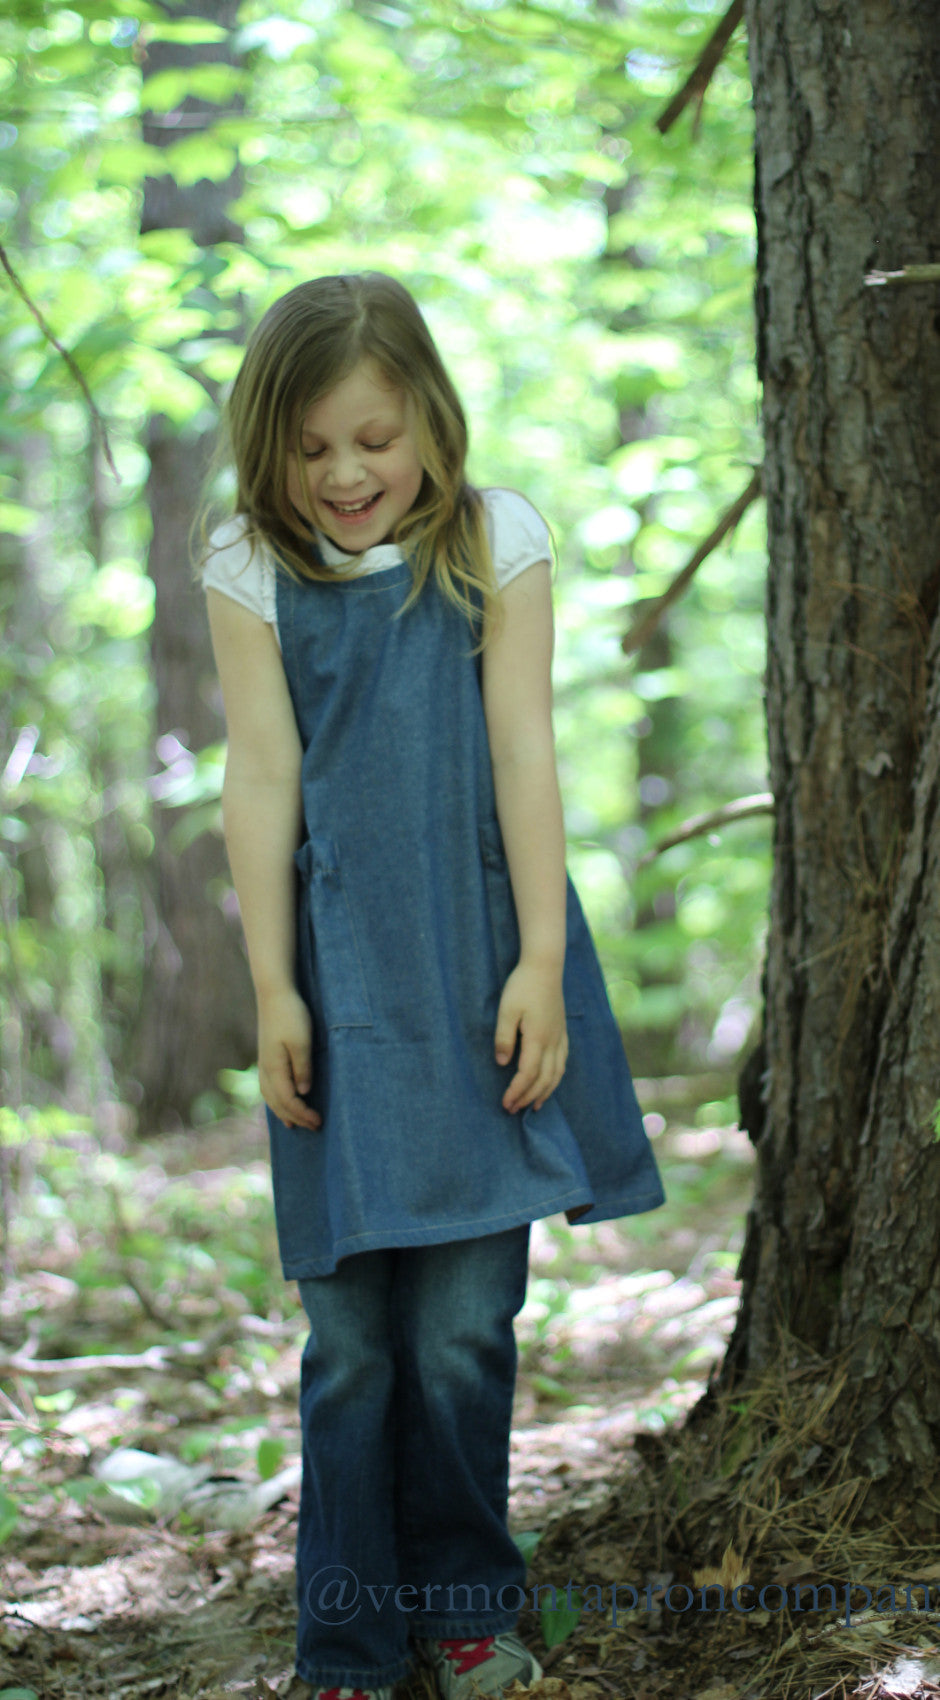 Children's No Tie Apron in Denim with Crisscross Back, front view